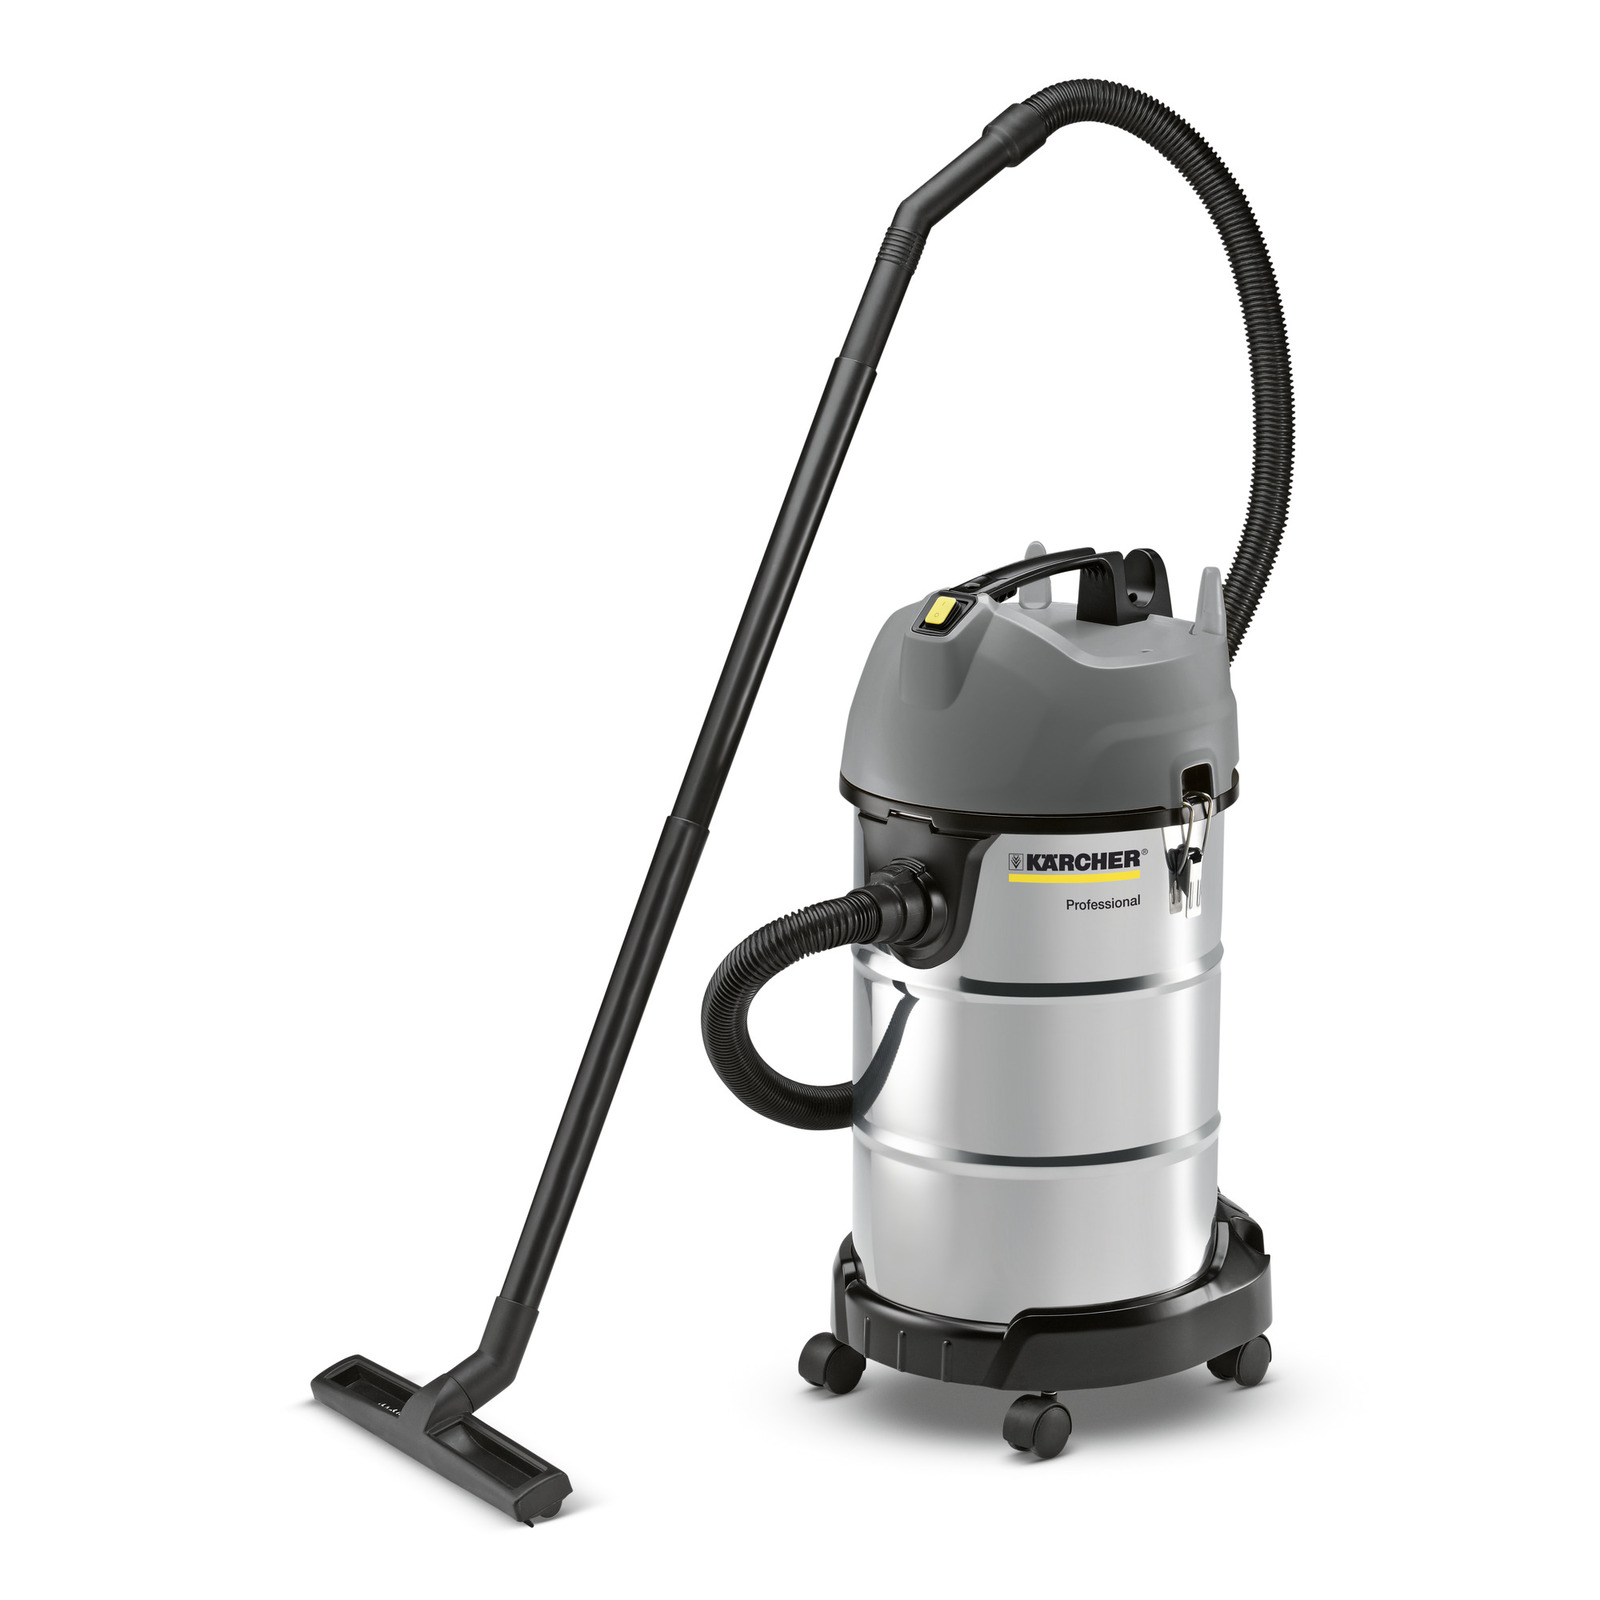 KARCHER 1.428-538.0 - NT 38/1 Wet And Dry Vacuum Cleaner